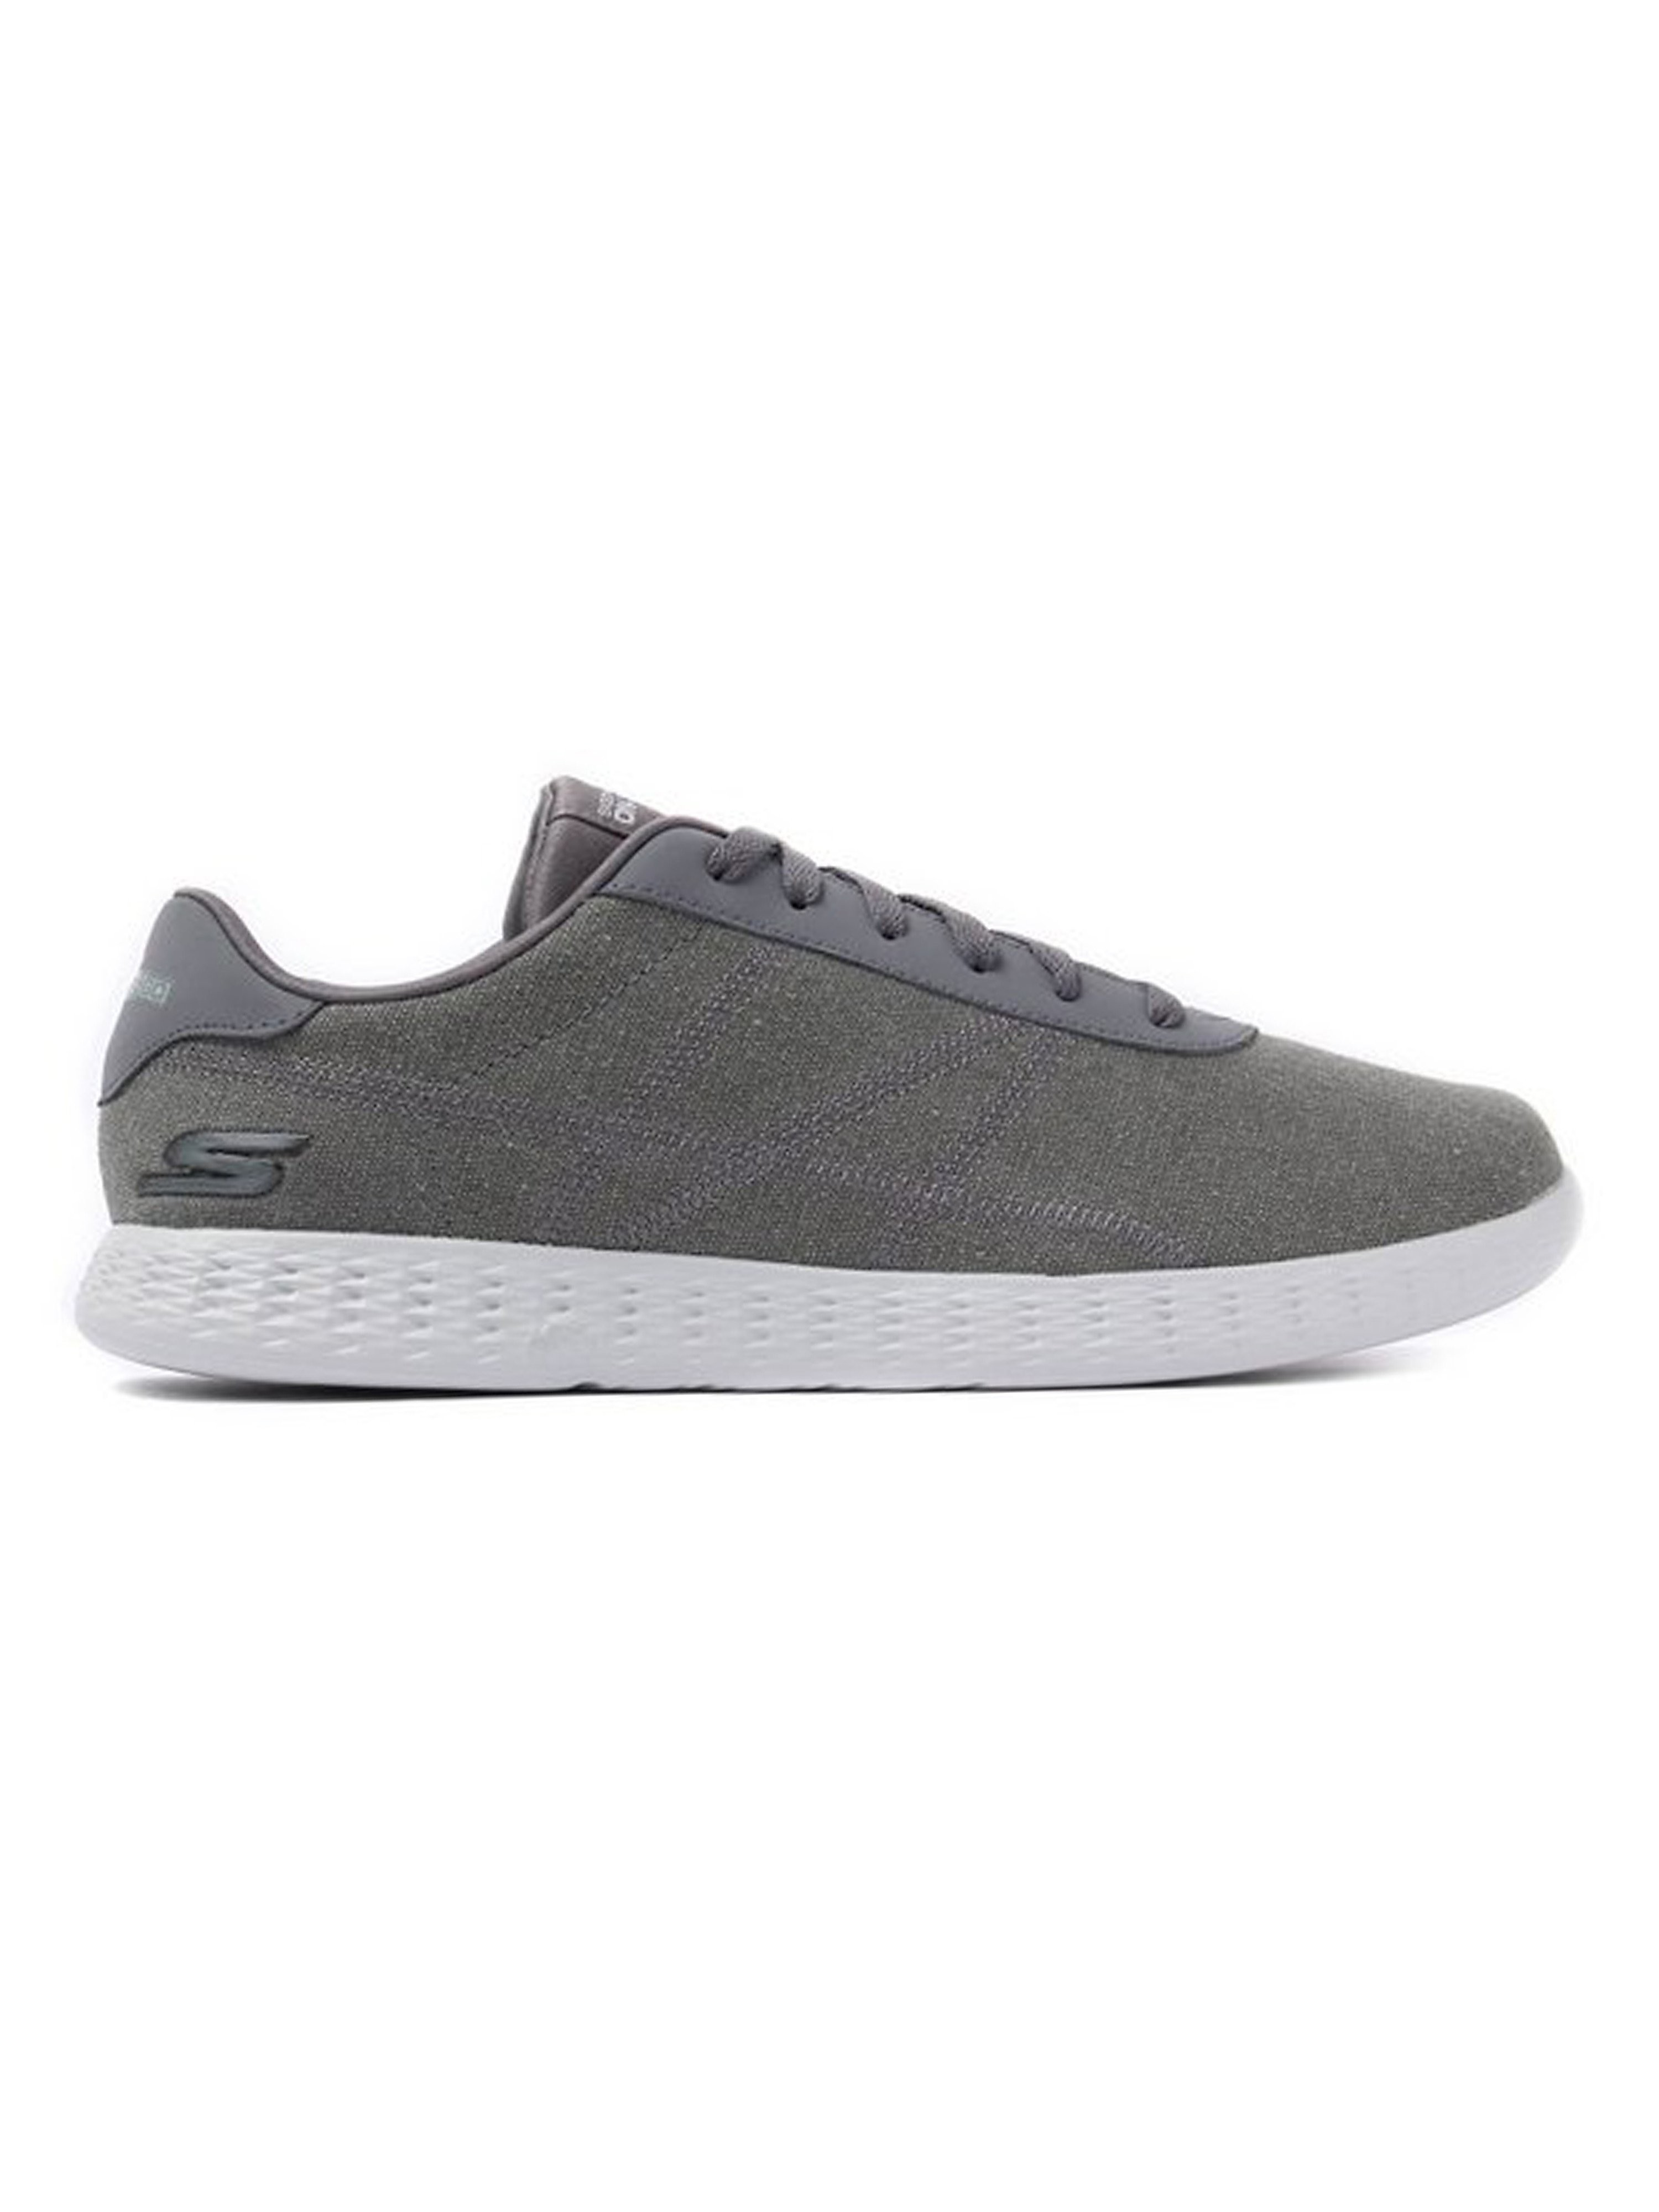 Skechers Men's On-The-Go Glide Eaze Trainers - Charcoal